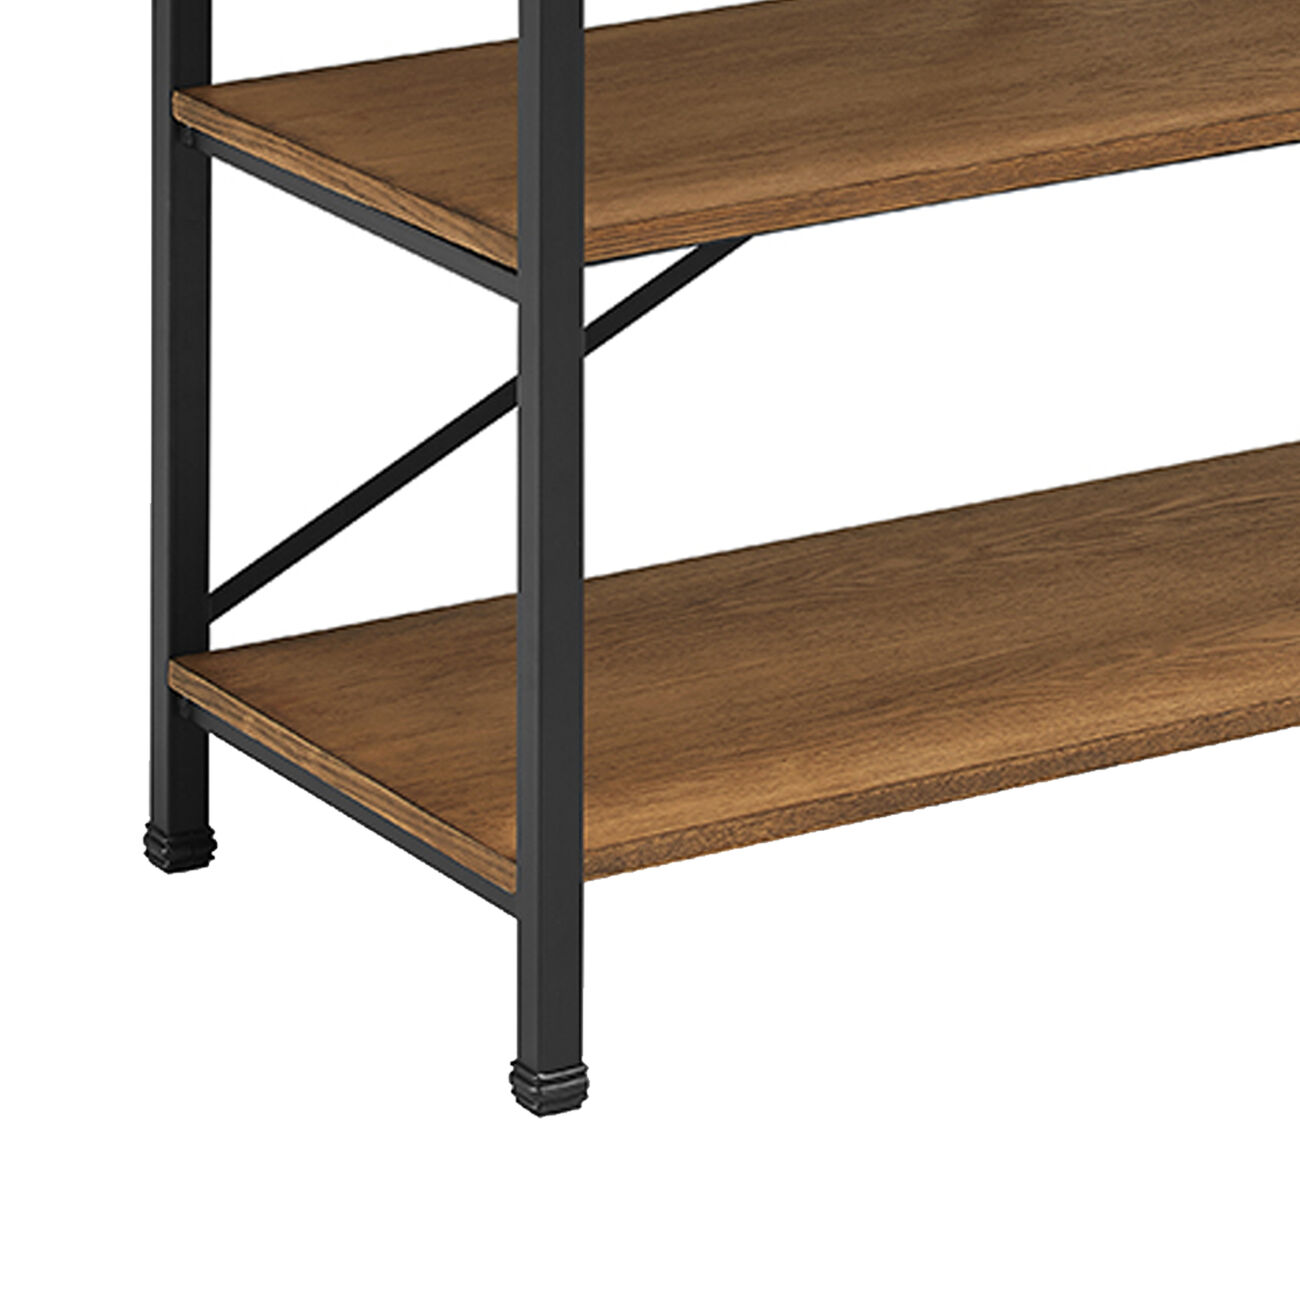 Wooden TV Stand with Two Open Shelves and Metal Feet, Brown and Black